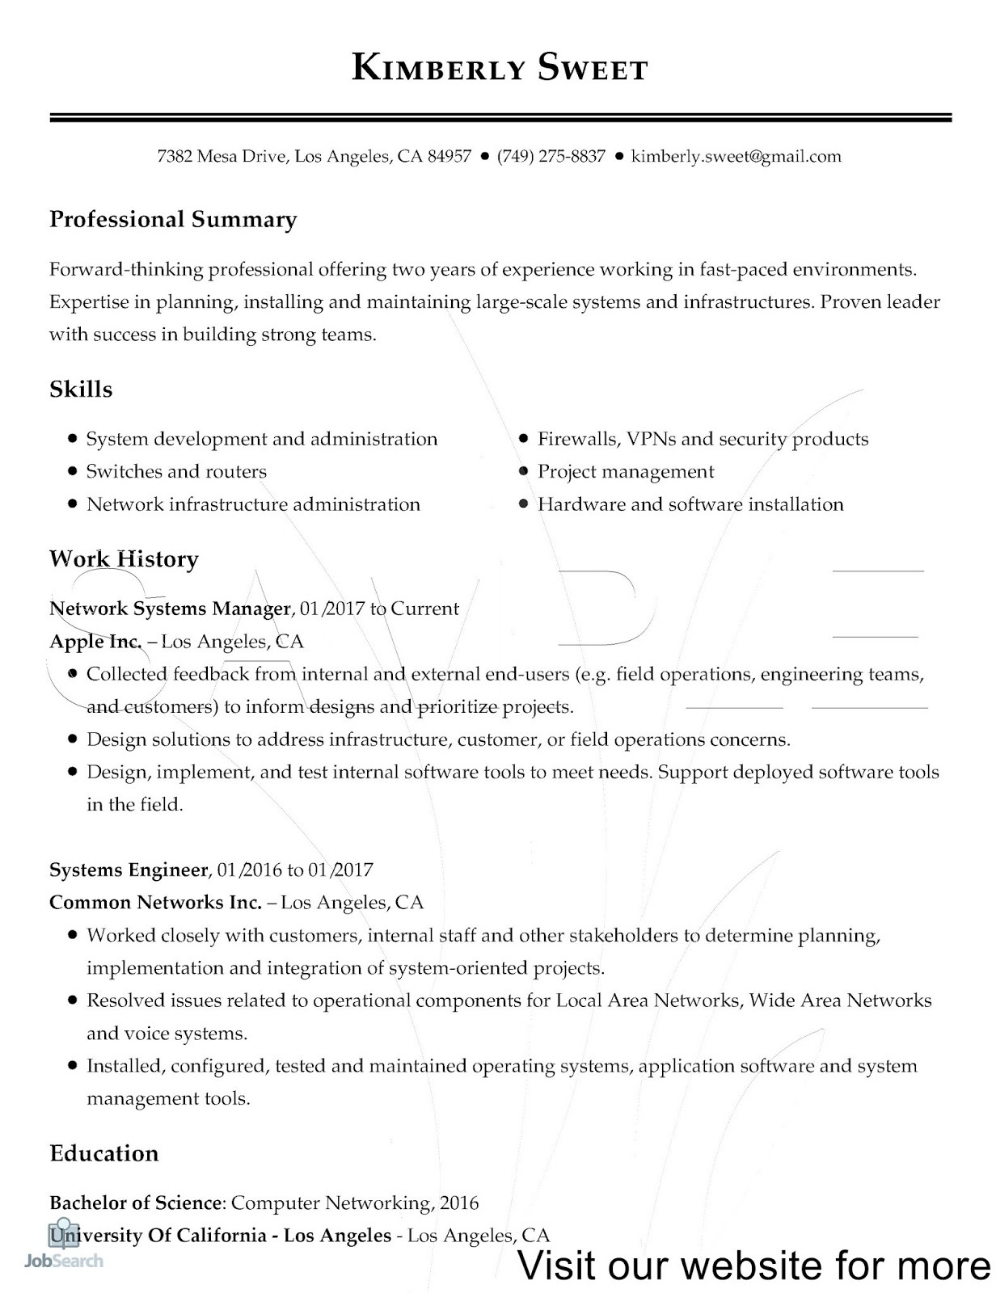 Resume Sample Format In Word For Student 2020 Resume Sample Format Simple Resume Format In In 2020 Resume Format In Word Simple Resume Format Simple Resume Examples